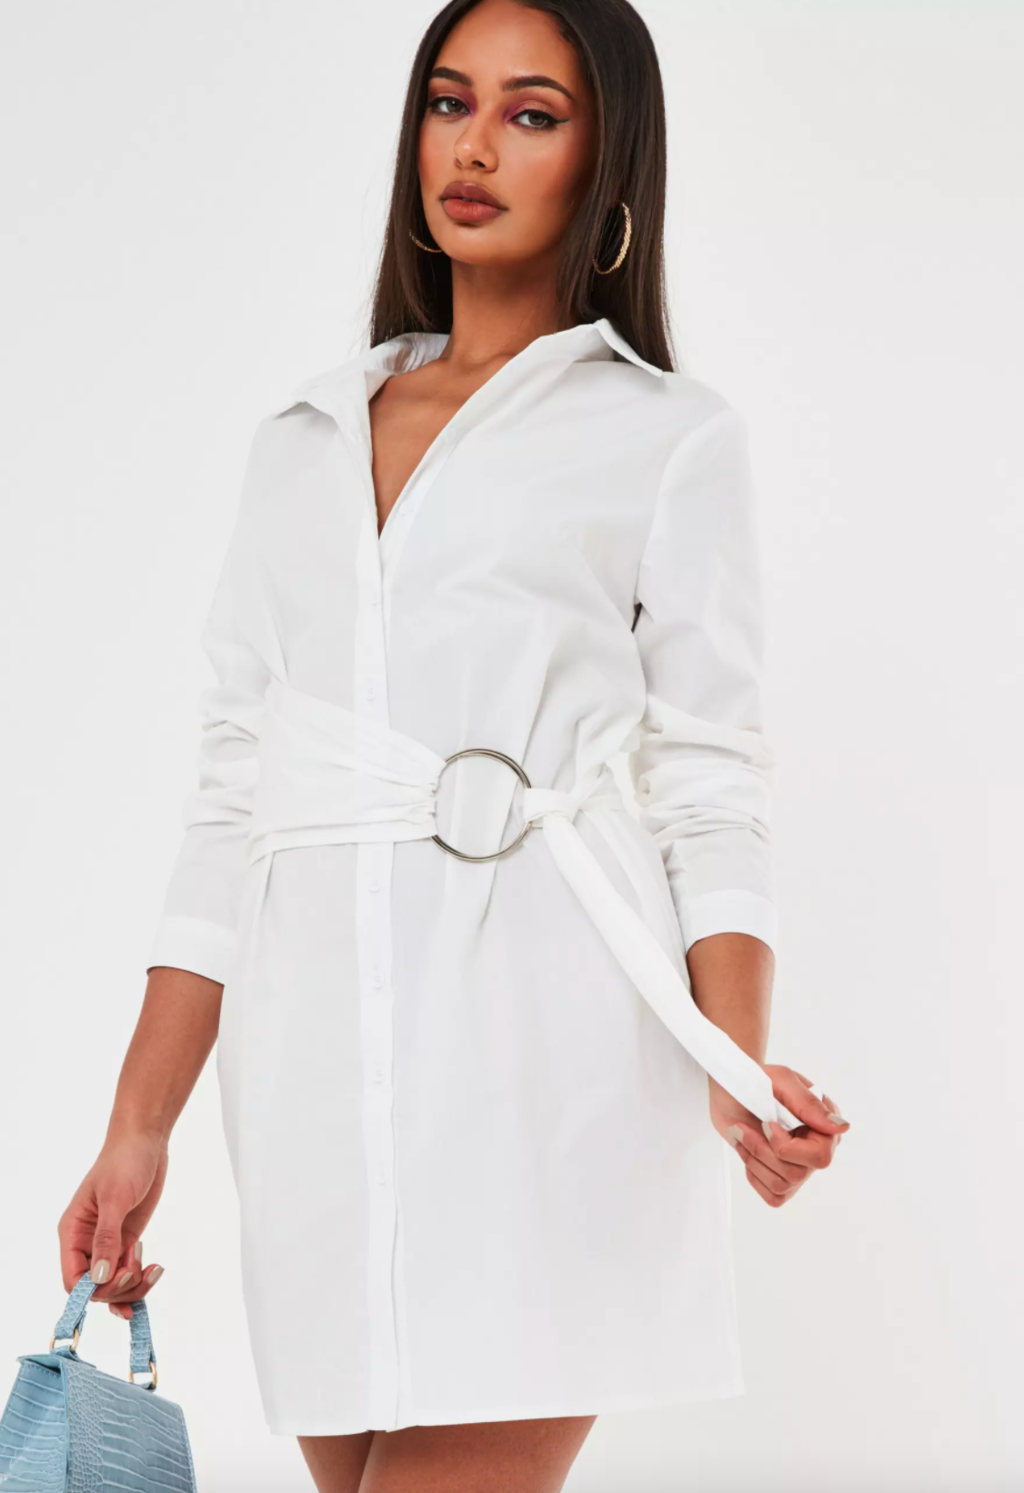 White poplin belted shirt dress from Missguided